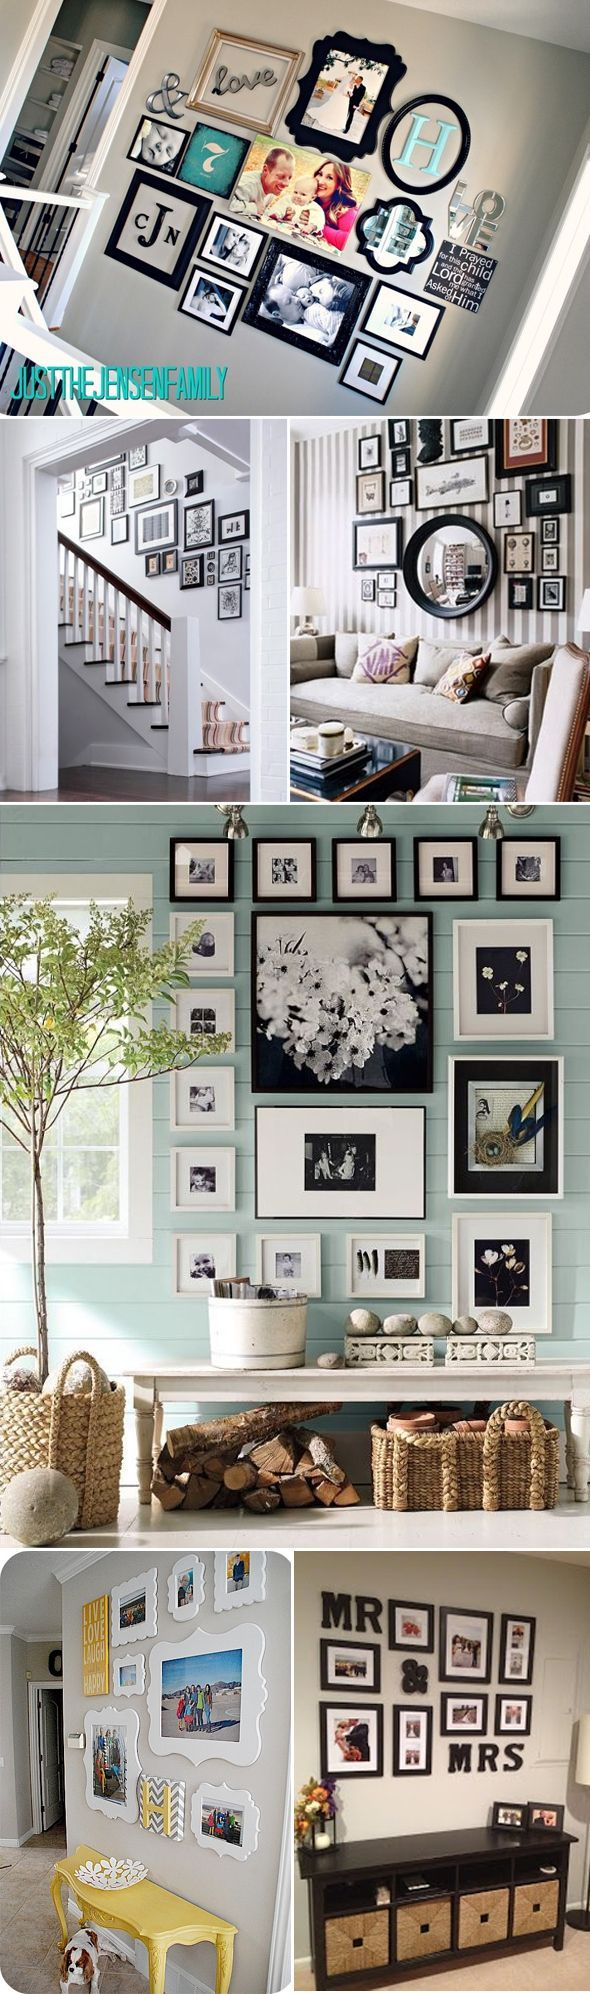 Photo wall inspirations! #homedecor